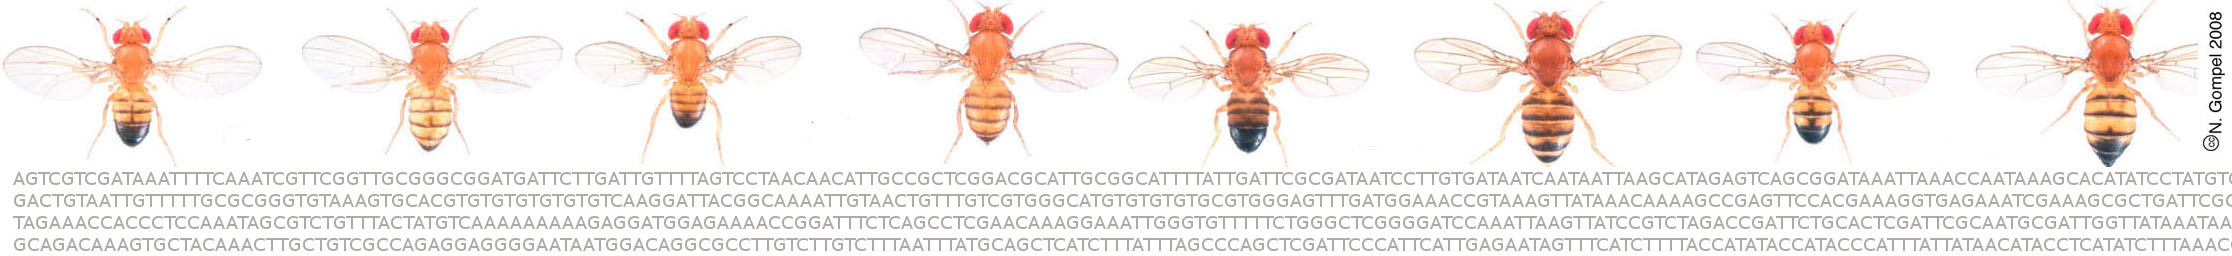 pictures of adult Drosophila flies